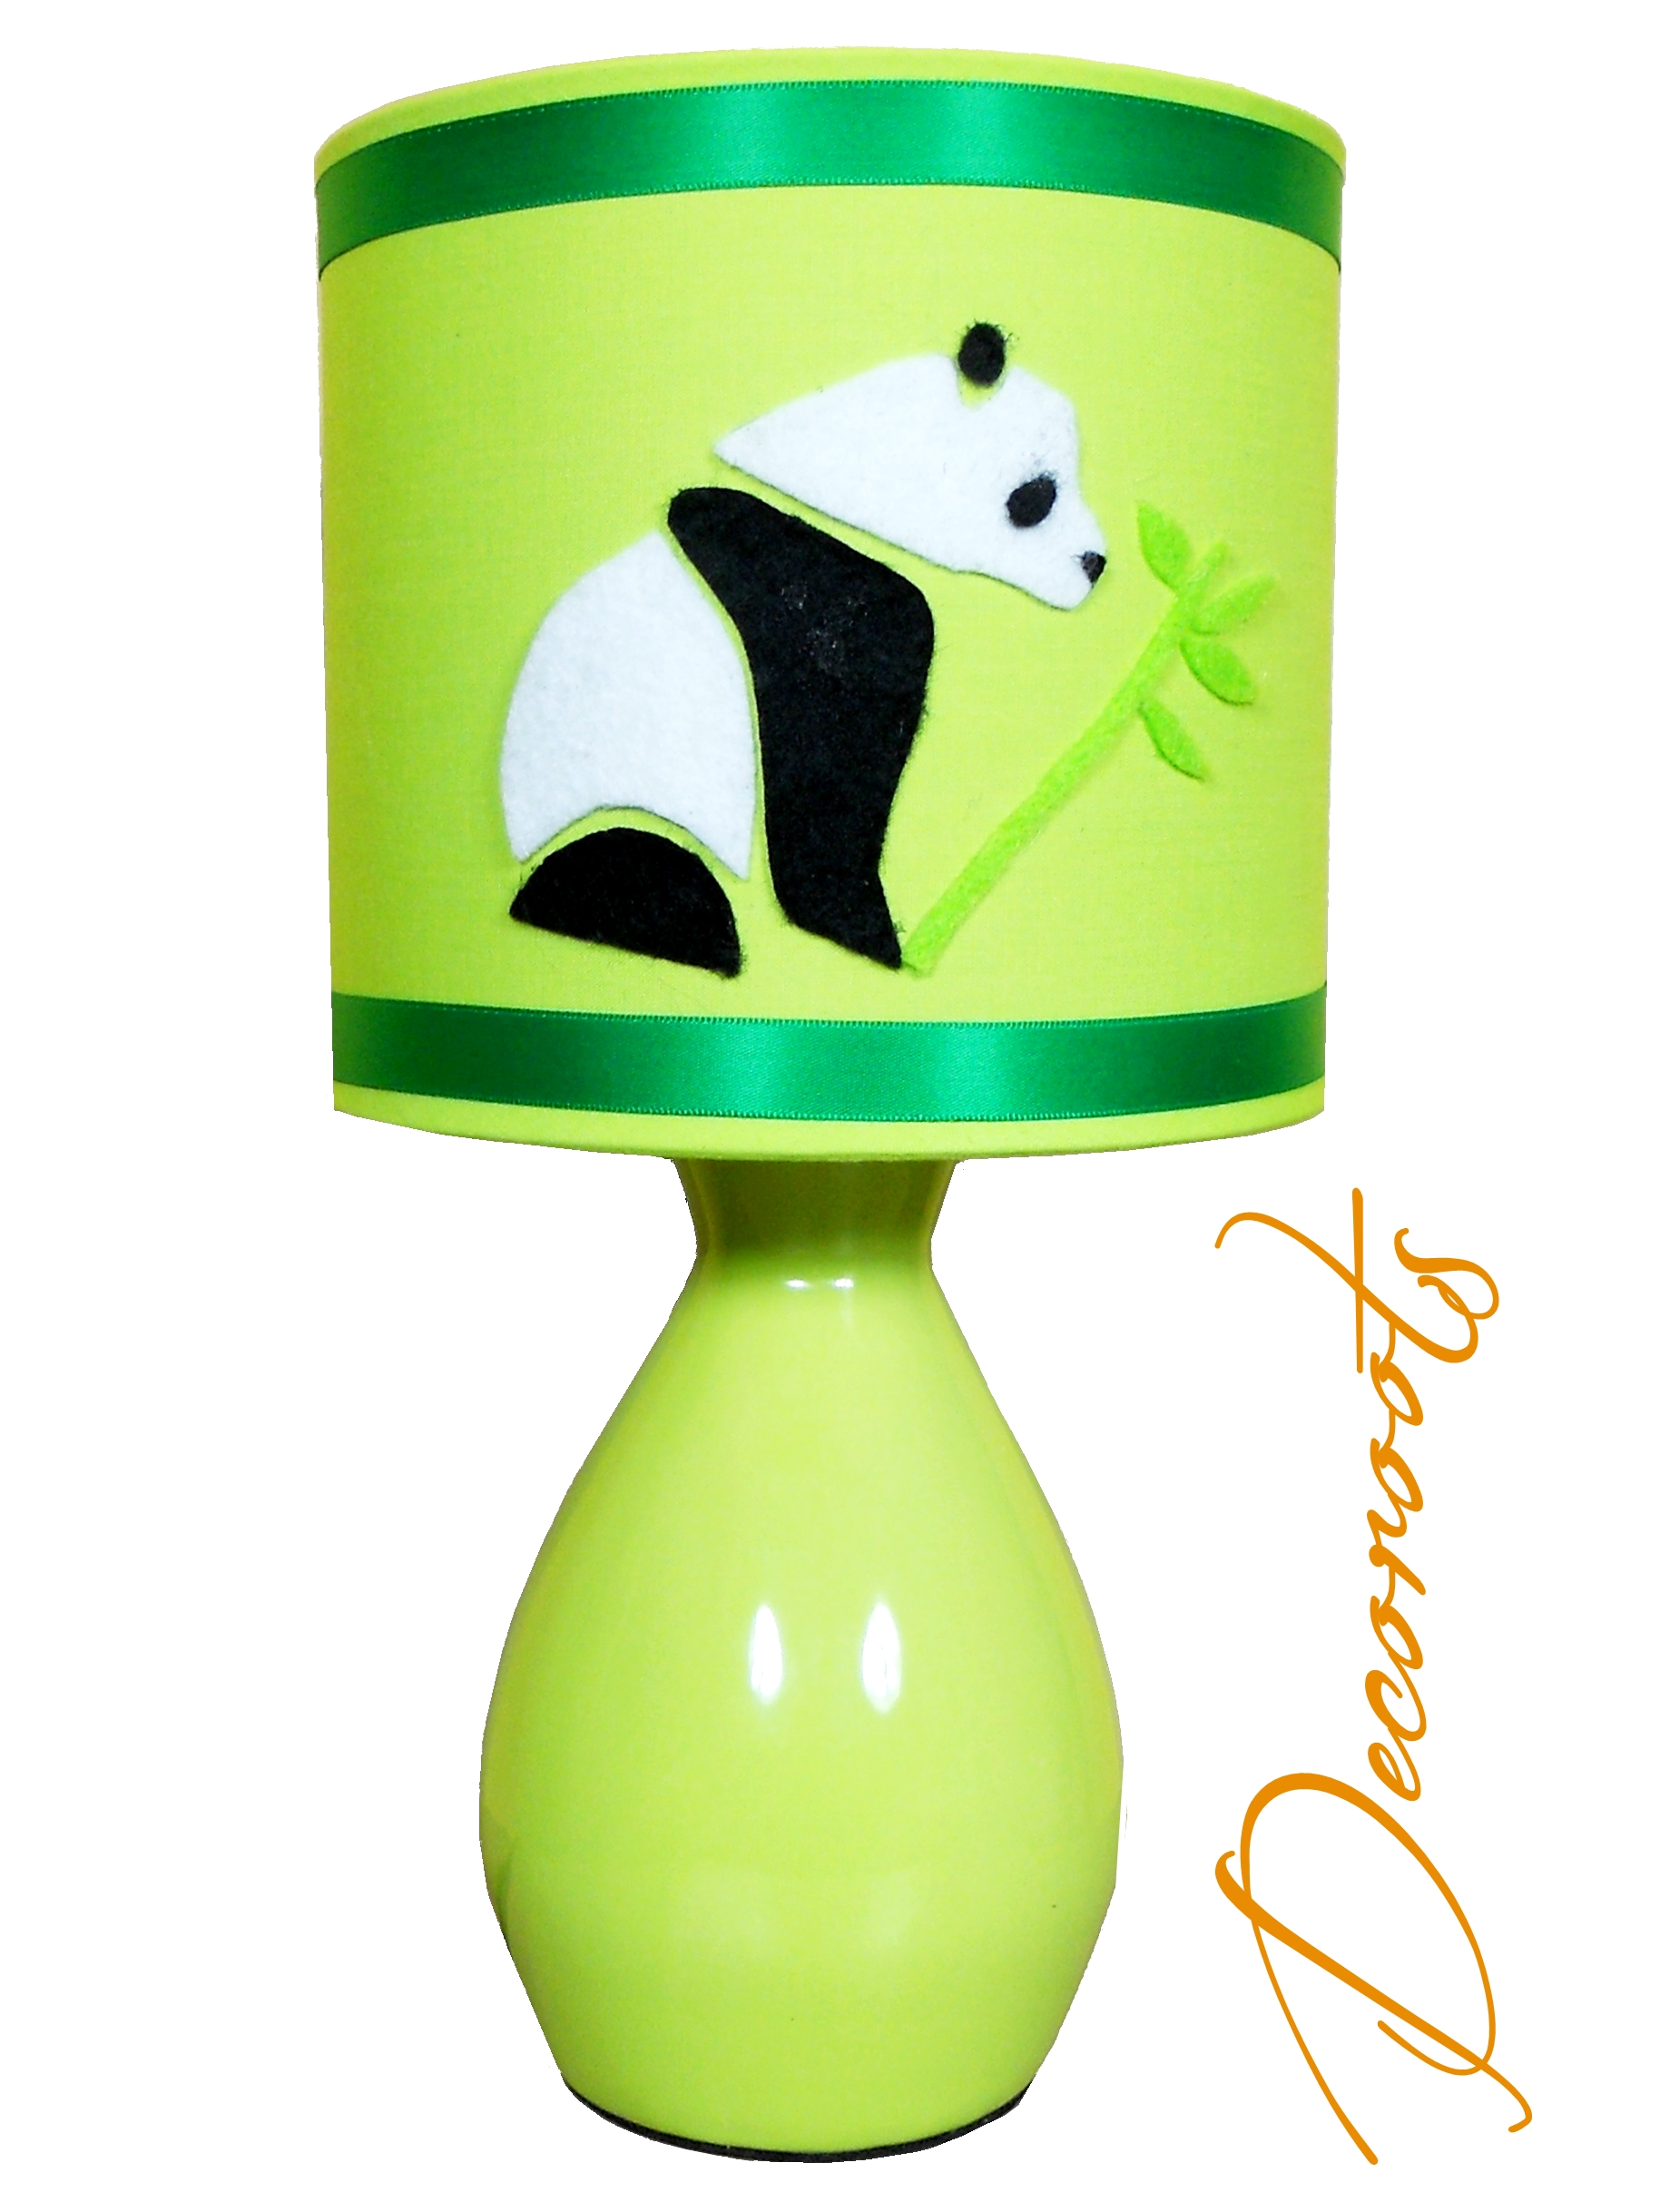 lampe de chevet enfant b b pampy le panda vert enfant b b luminaire enfant b b decoroots. Black Bedroom Furniture Sets. Home Design Ideas